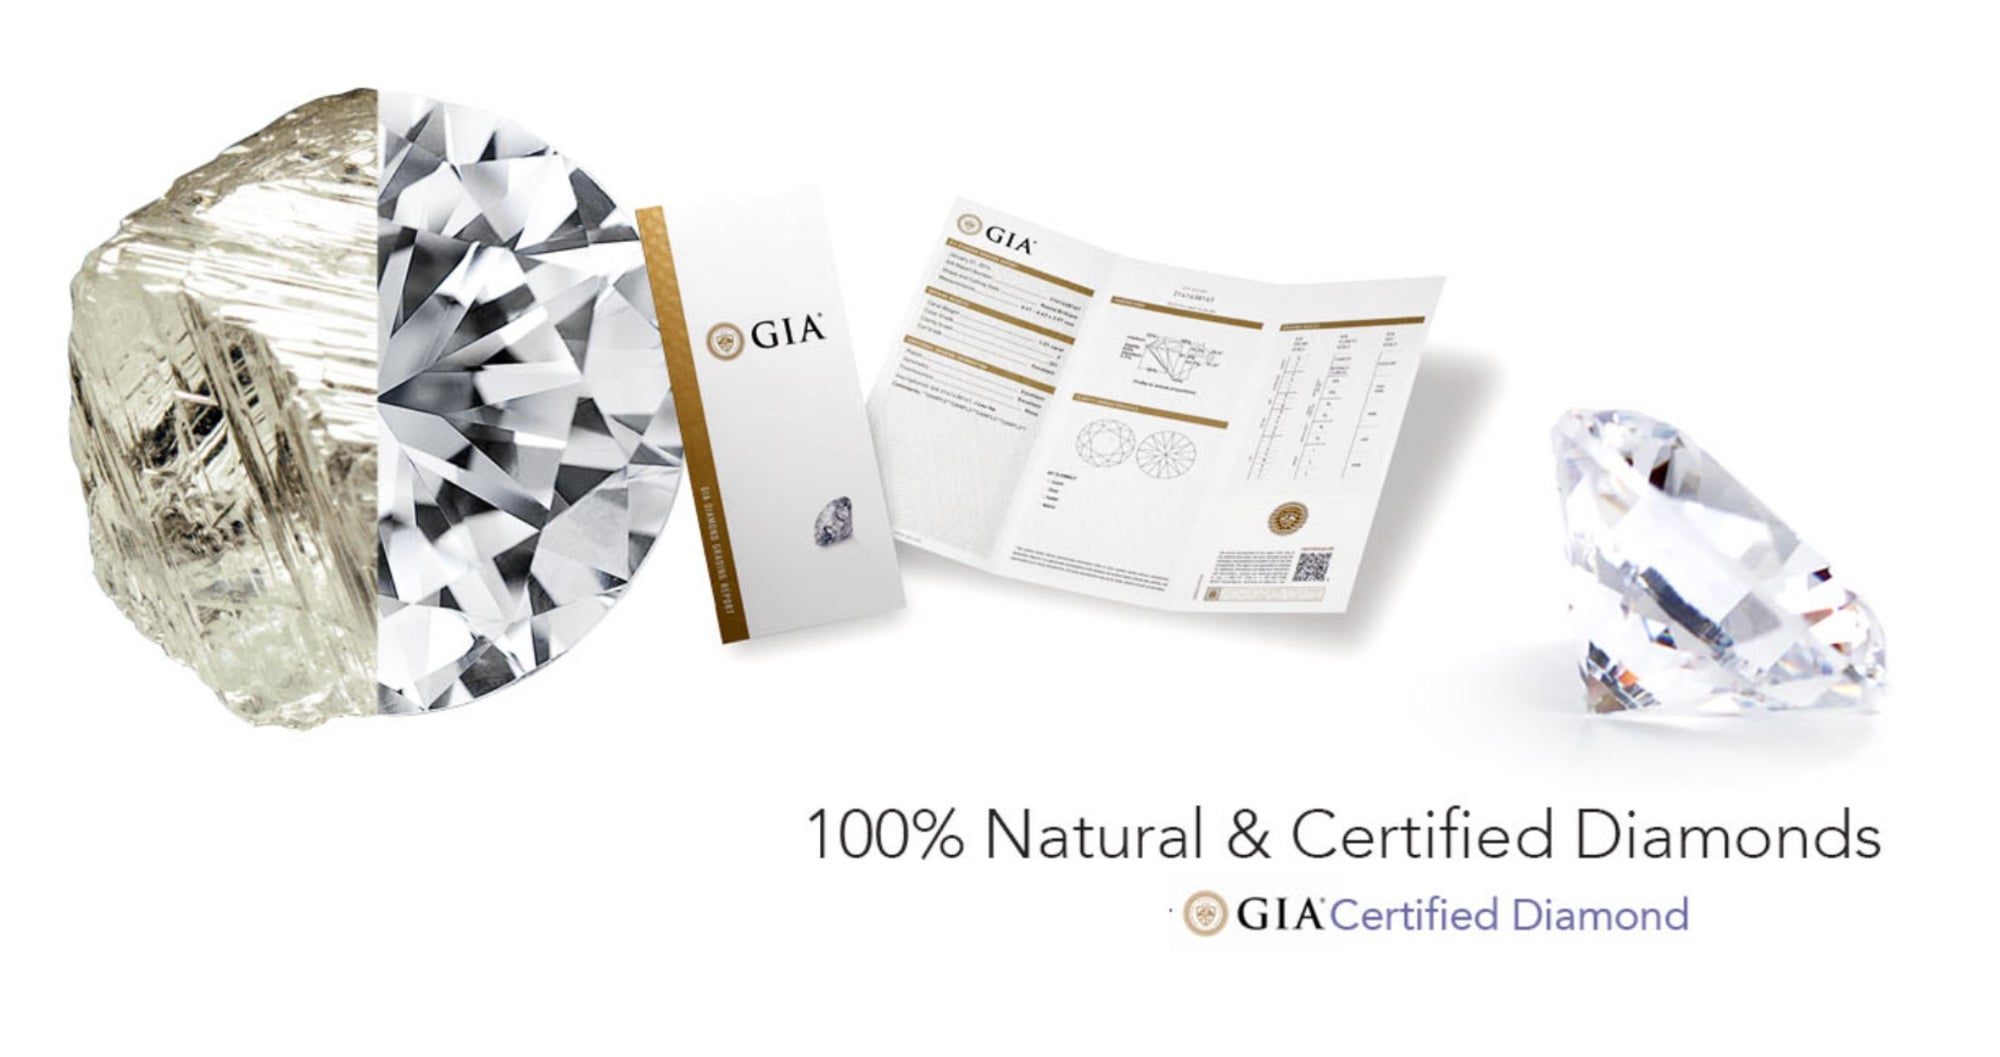 100% Natural and Certified GIA Diamonds- Ashleigh Branstetter®️